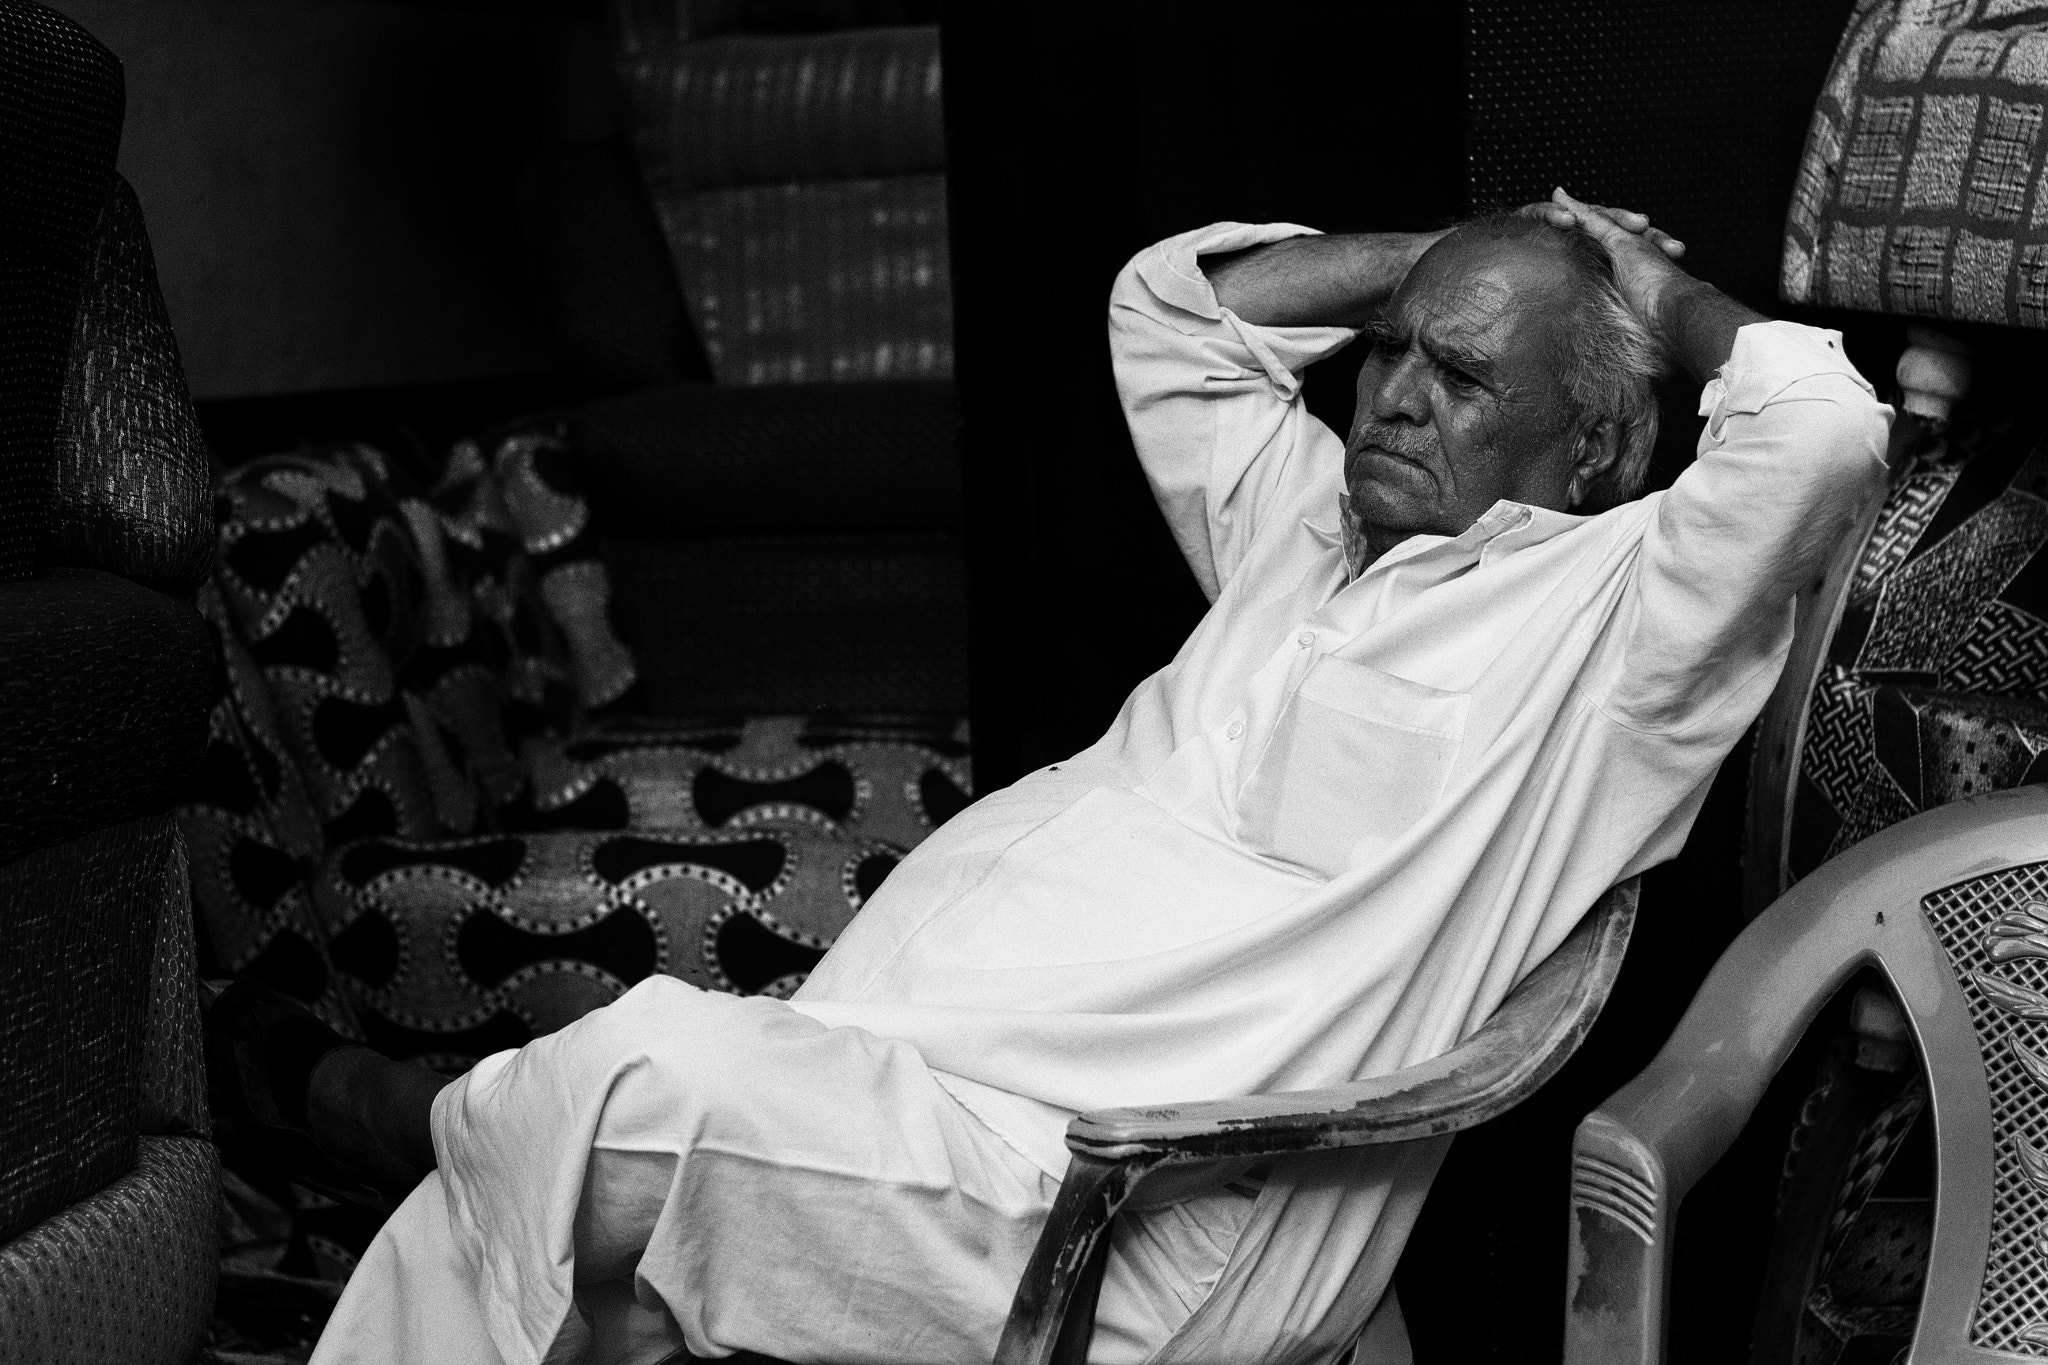 Photograph Relaxation Time by Dipayan Bhattacharjee on 500px